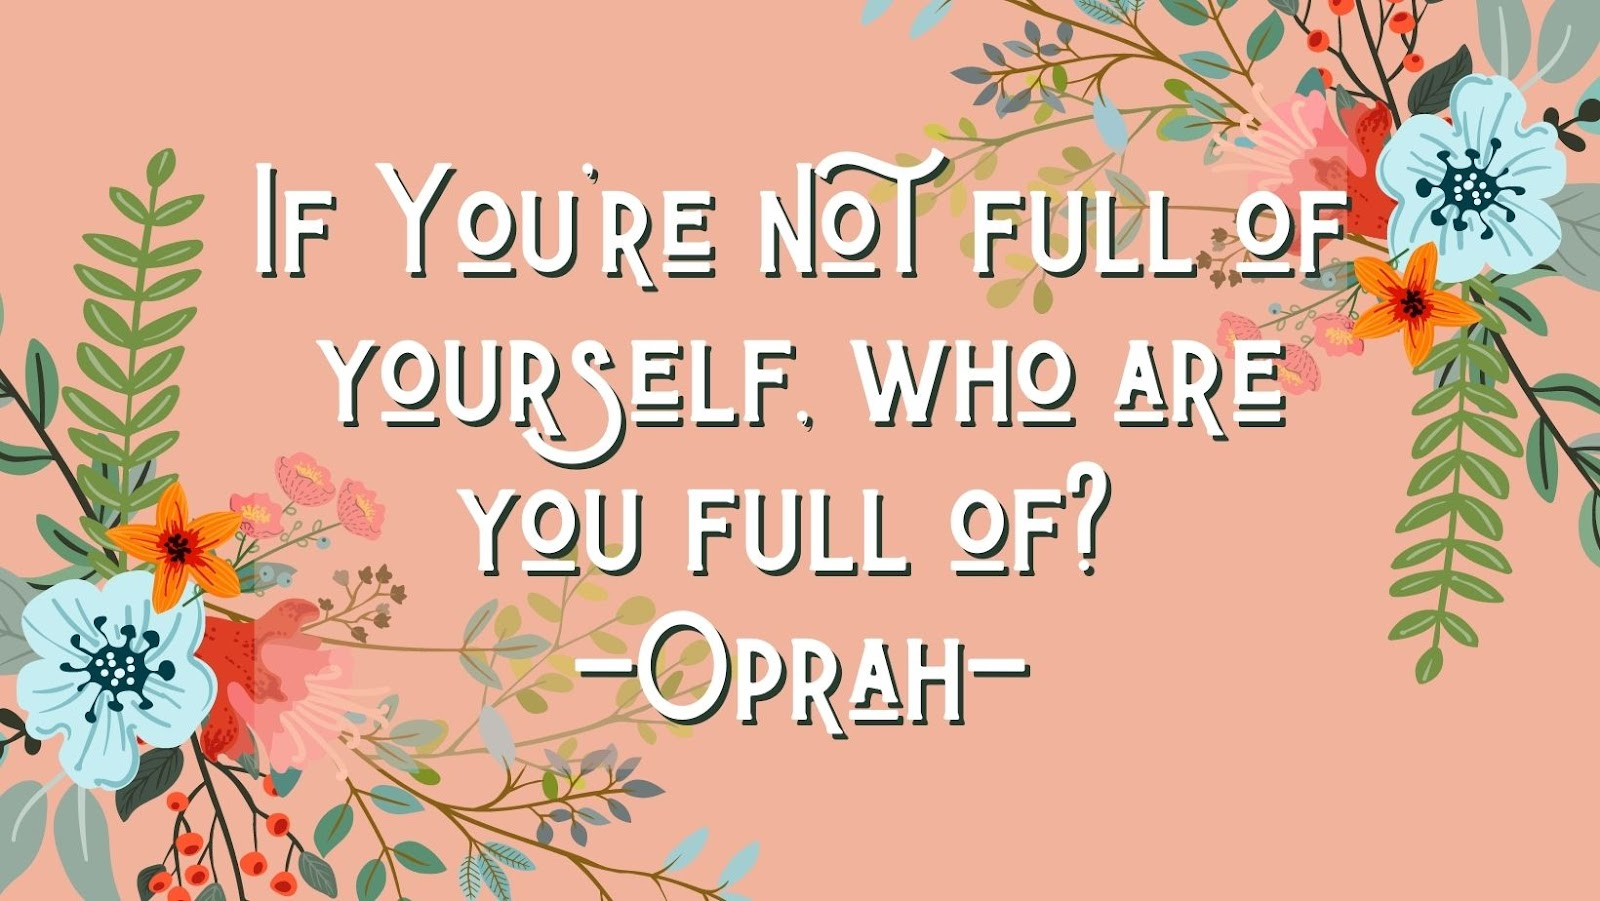 if you're not full of yourself, who are you full of? Quote from Oprah